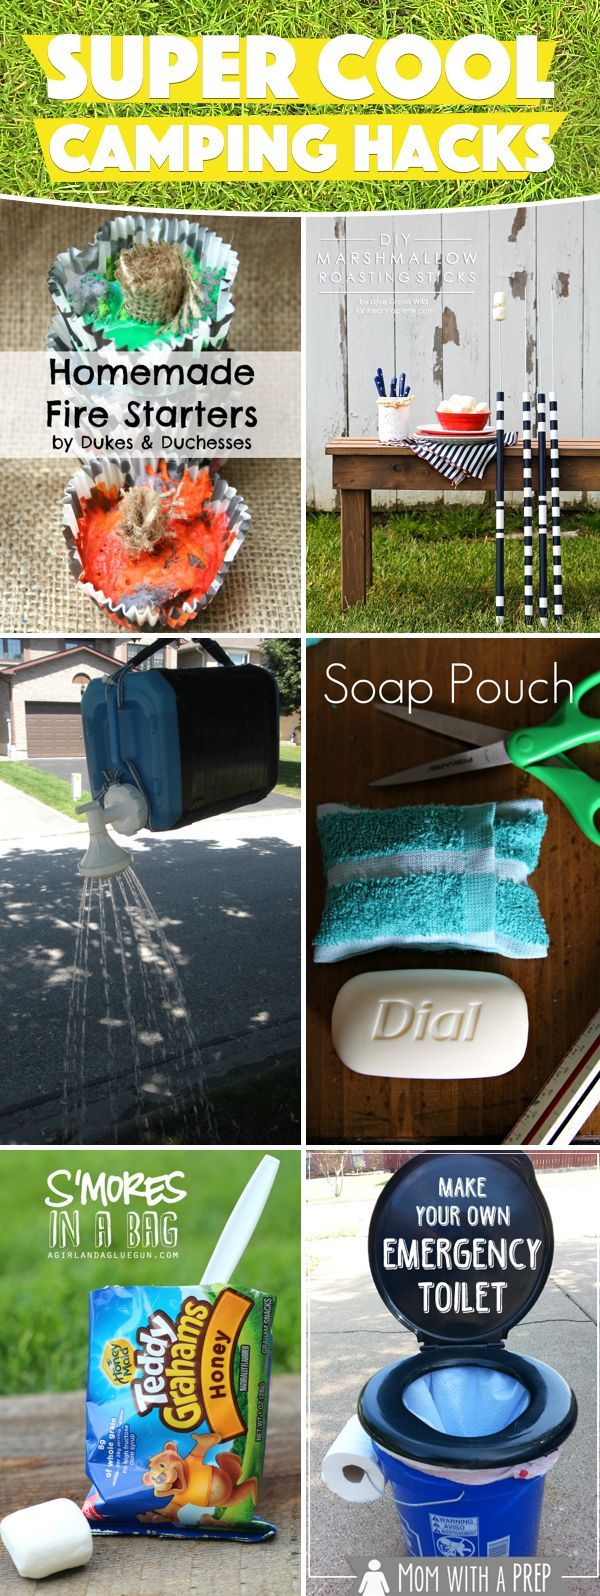 Photo of 20 Super Cool Camping Hacks Making Your Trips Hassle-Free and Fun!